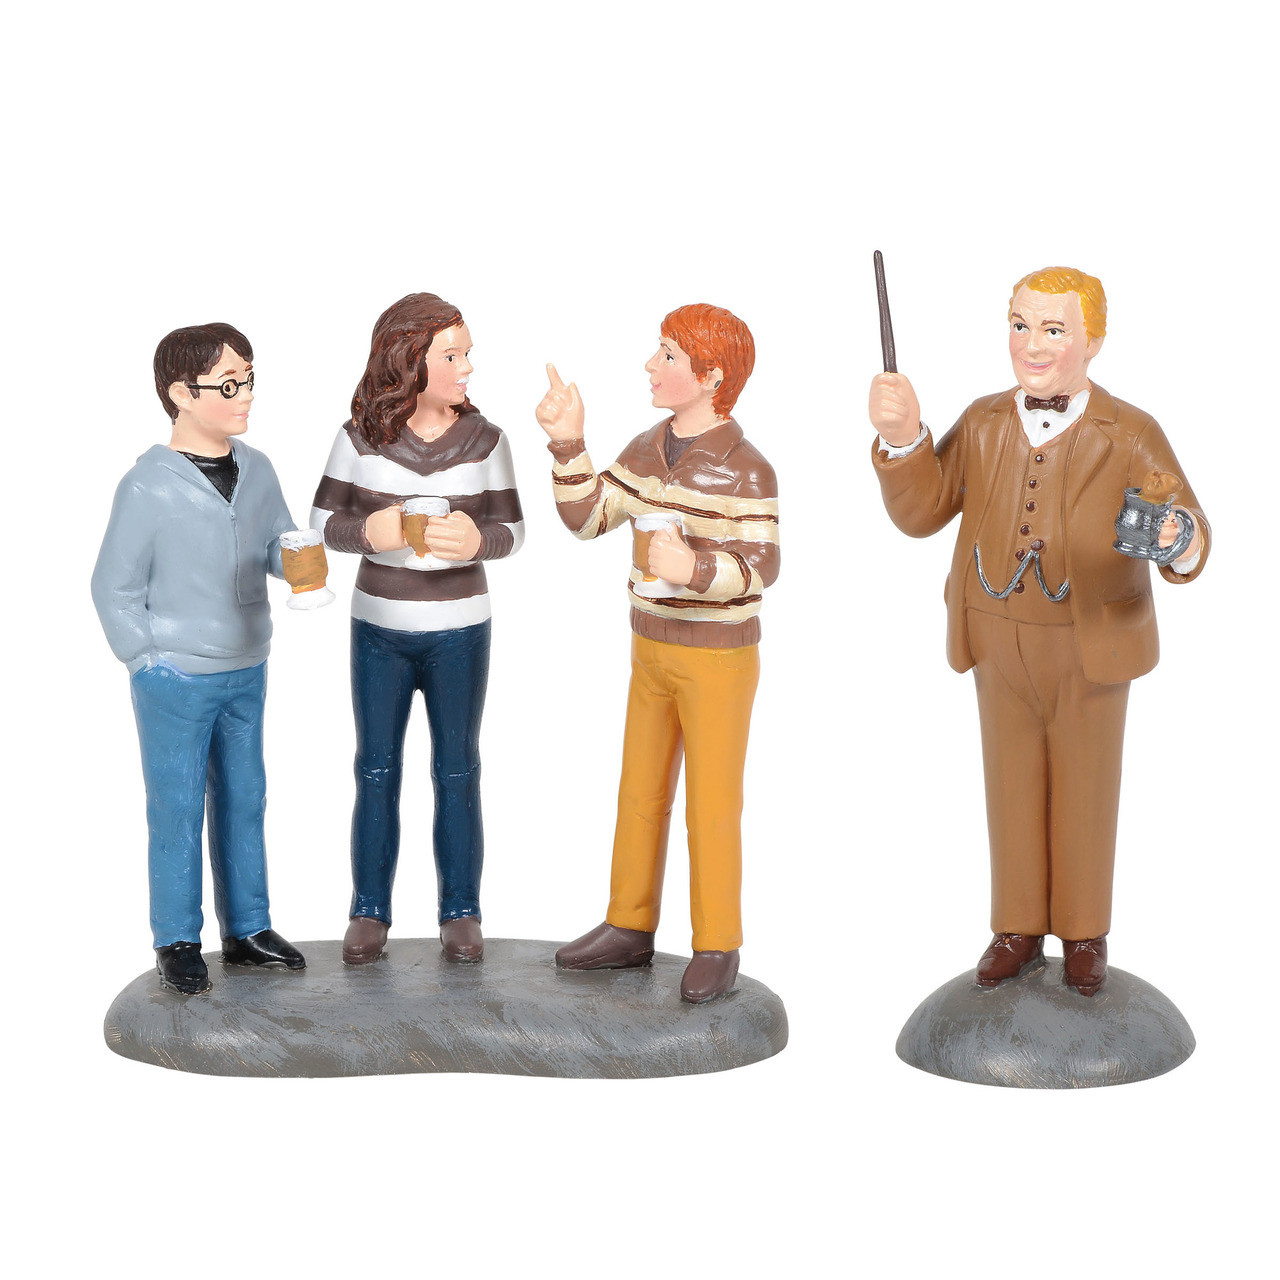 Department 56 Harry Potter Village Filch and Mrs.Norris Figurine 6006513